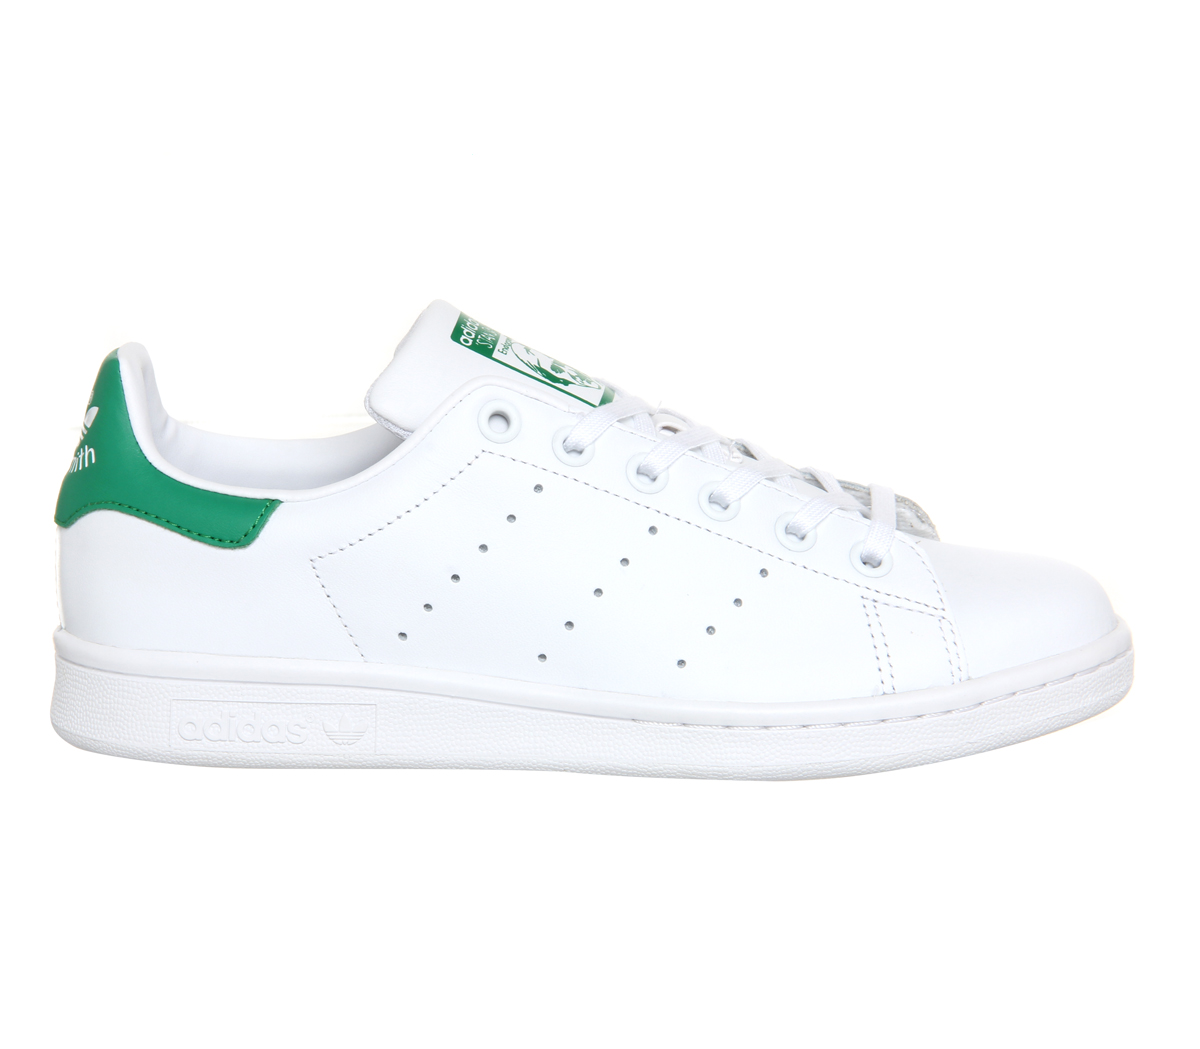 new product 59799 4f9a6 Homme-Adidas-Stan-Smith-Baskets-Core-Blanc-Vert-